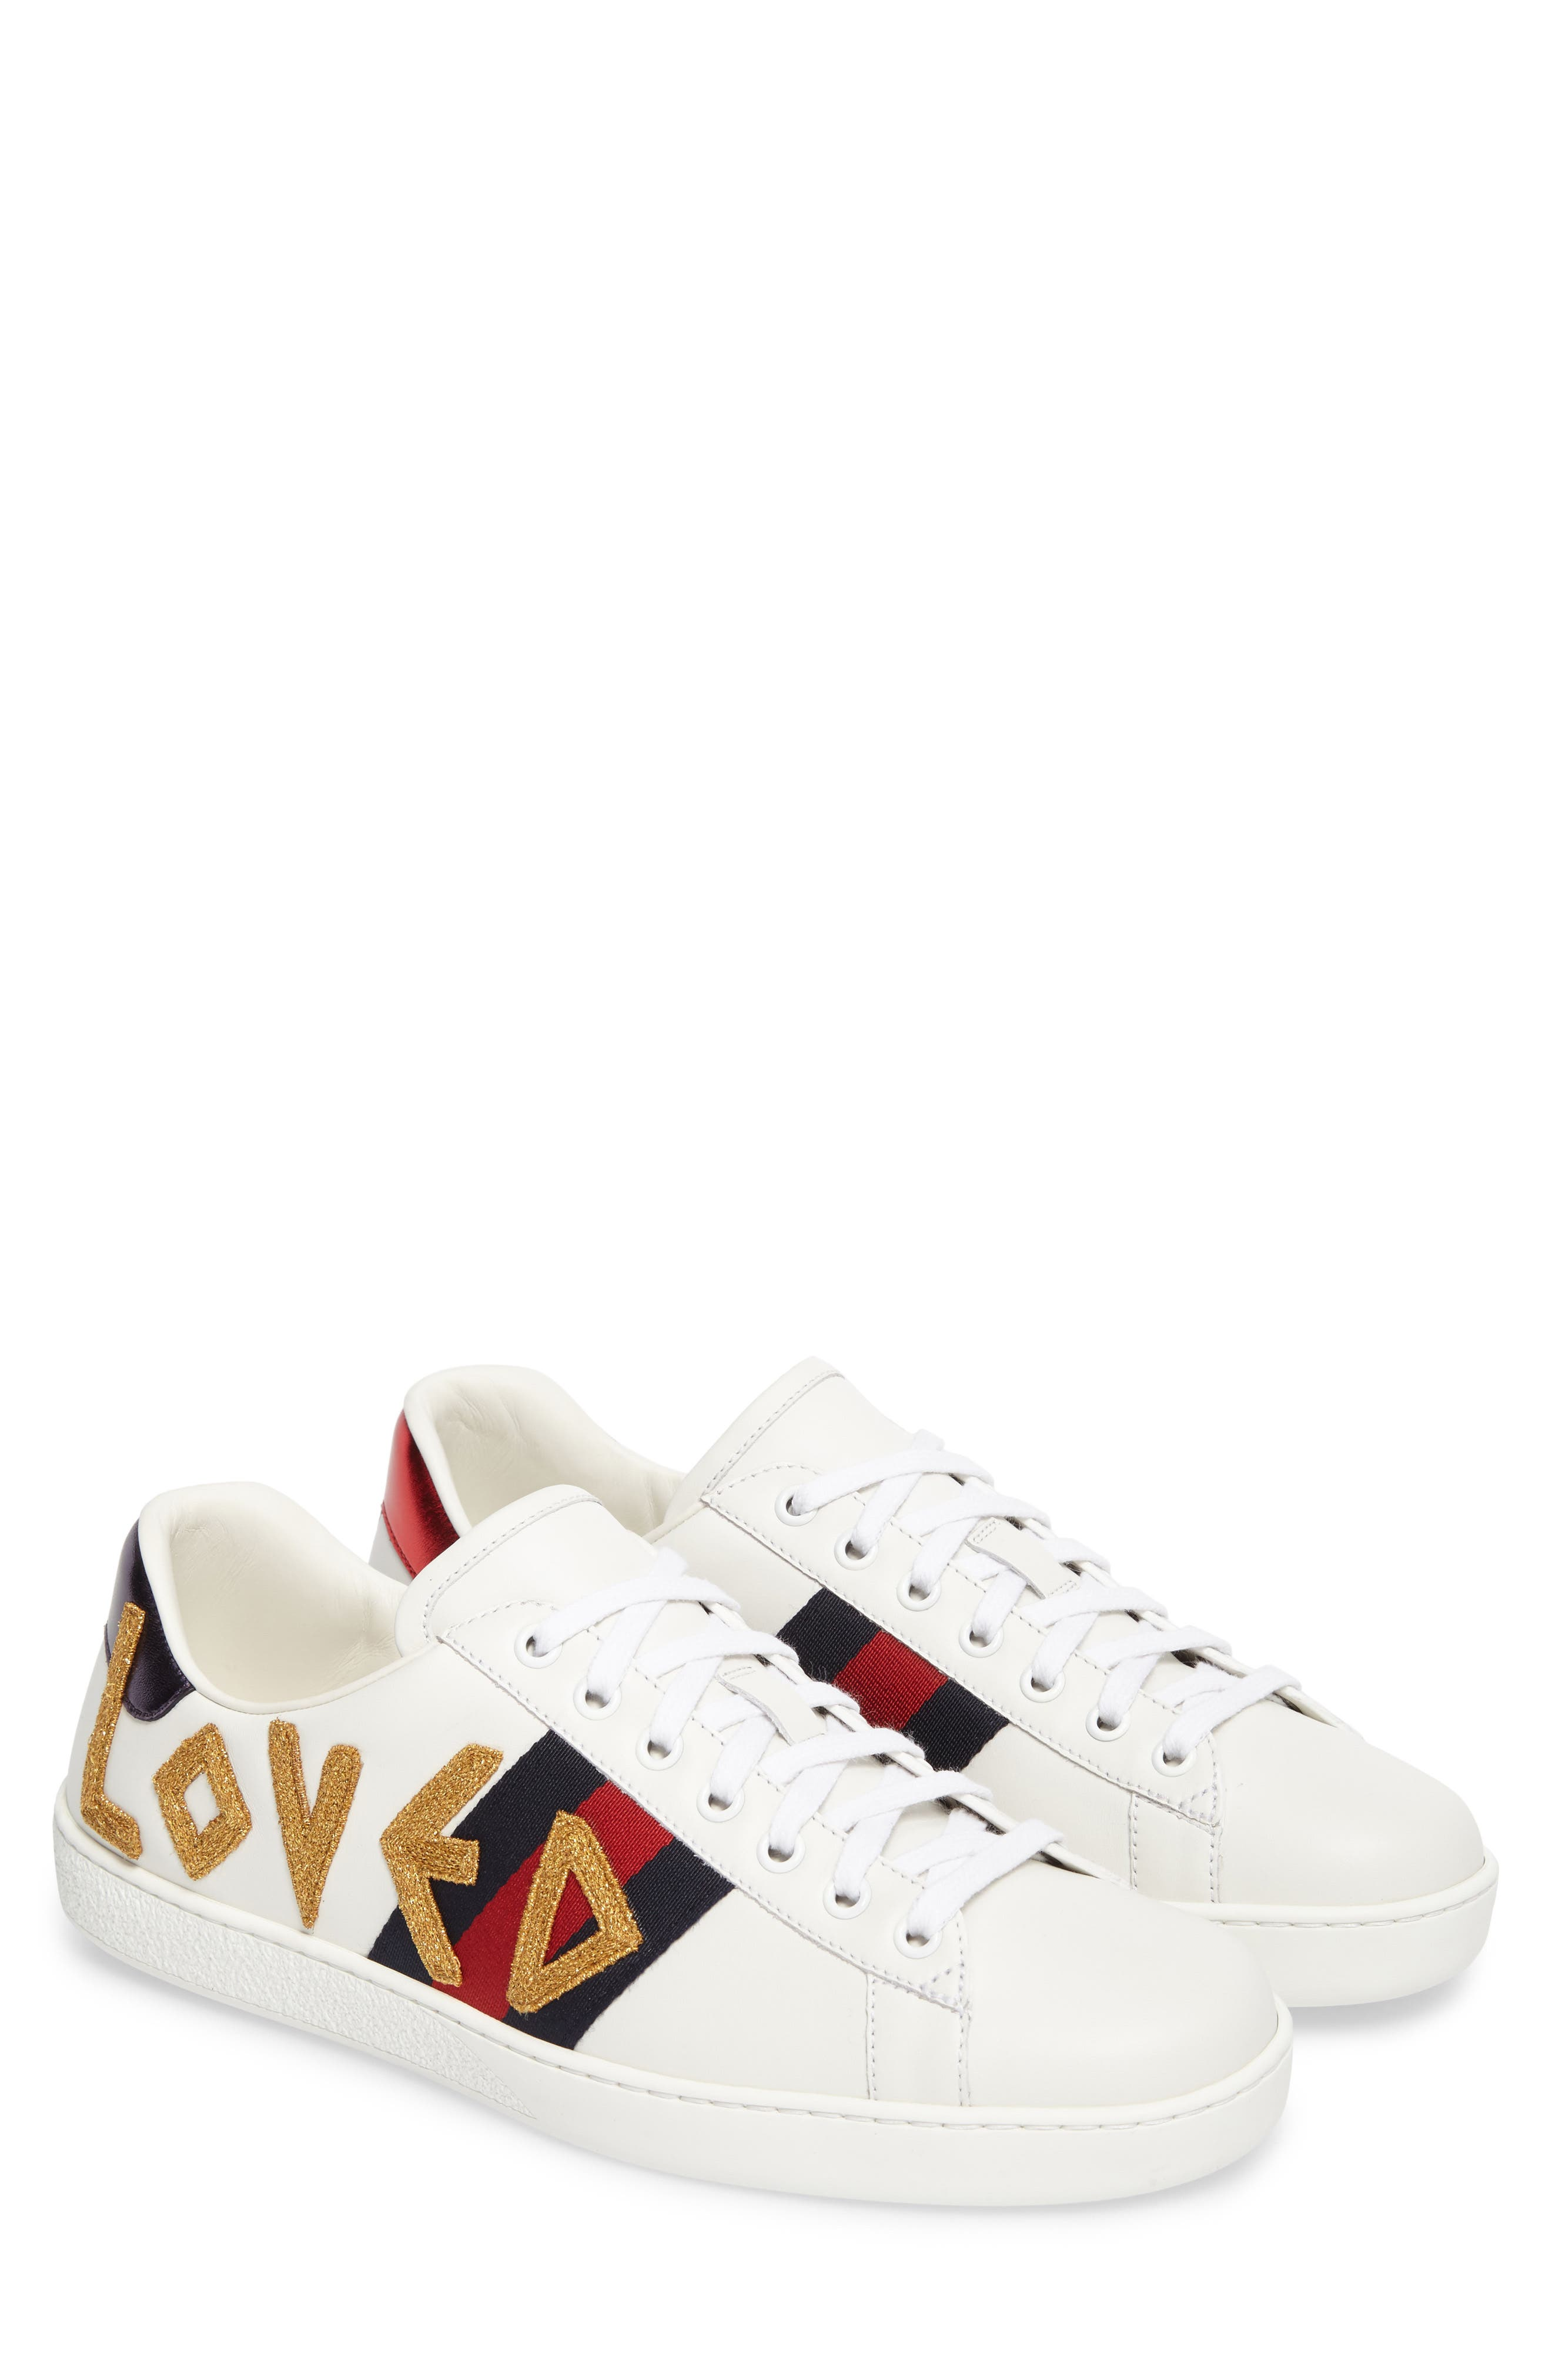 Main Image - Gucci New Ace Loved Sneaker (Men)